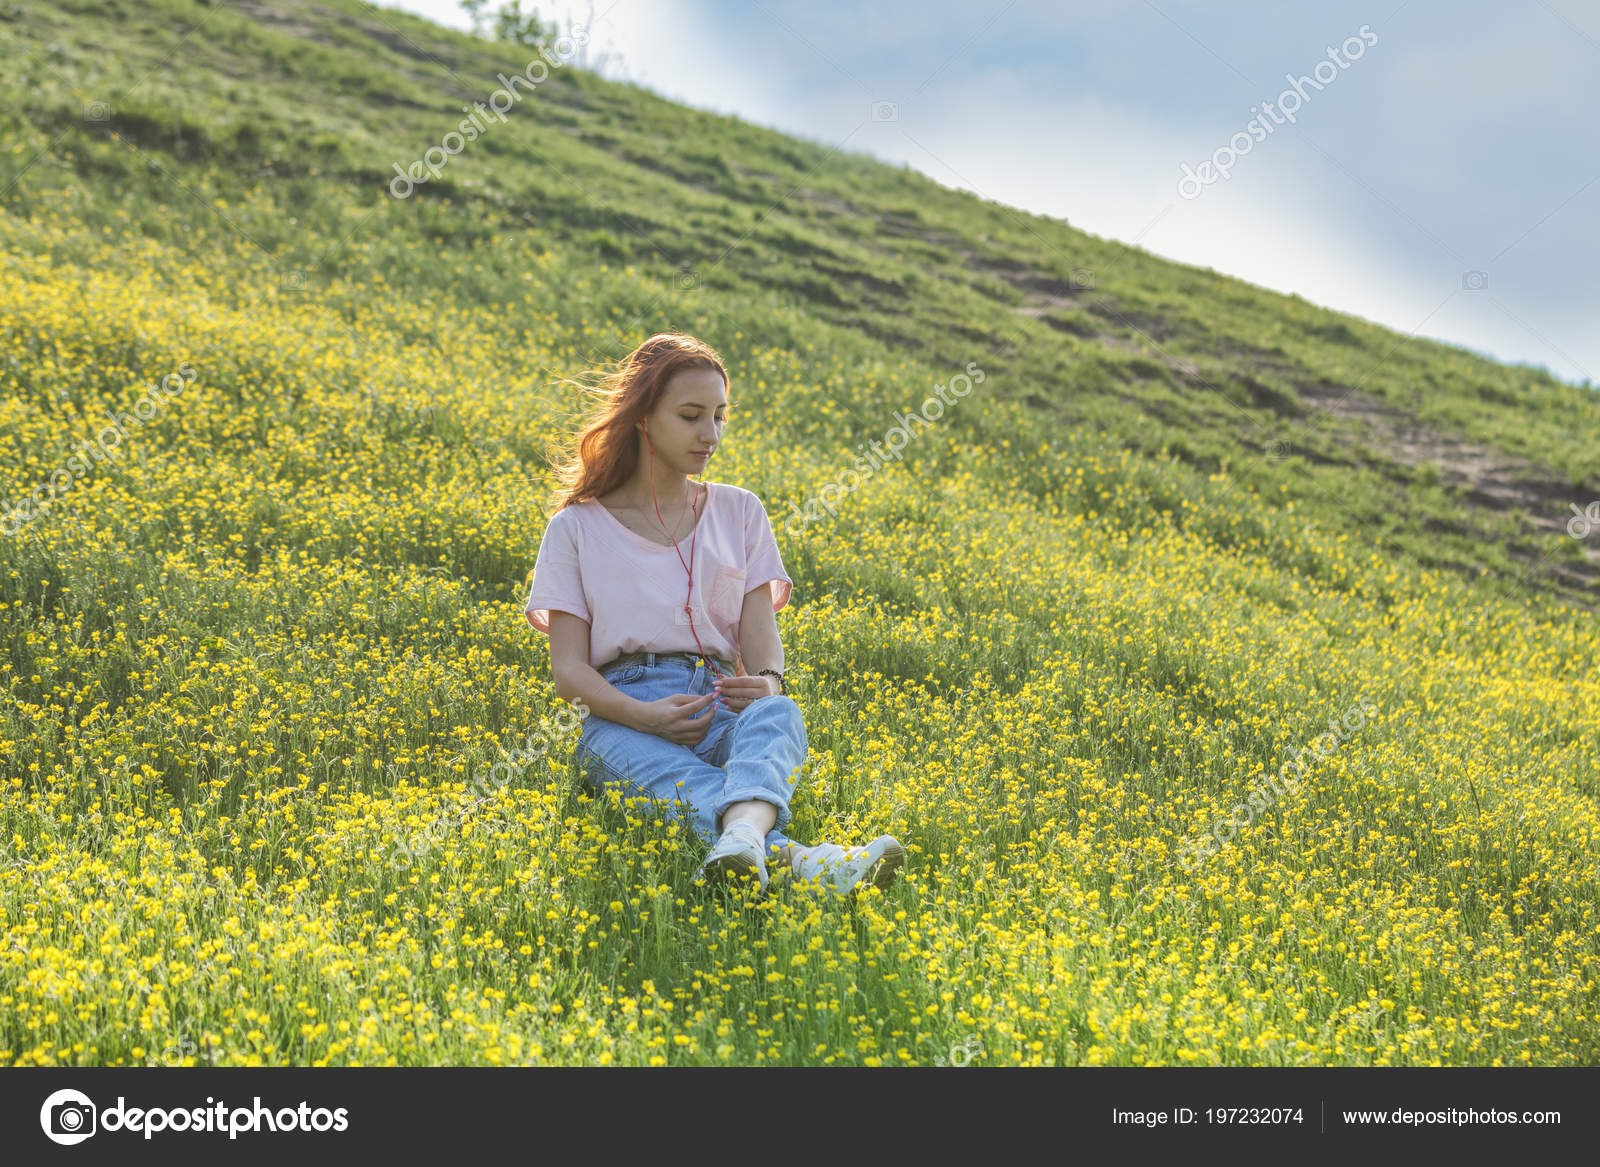 Young Girl Teenager Lawn Field Yellow Flowers Long Chestnut Hair